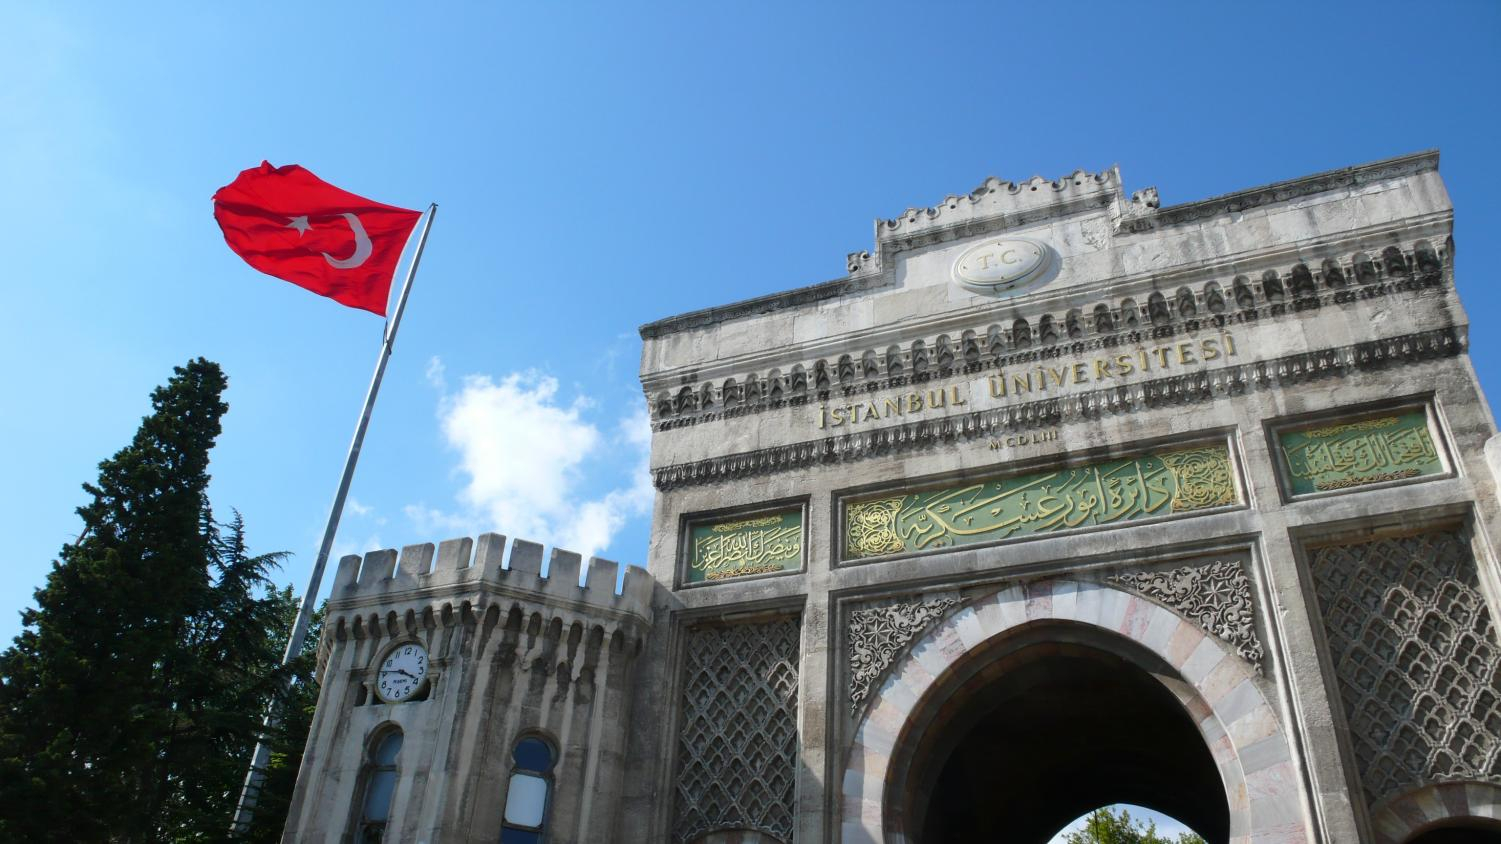 Entrance to Isanbul University in Turkey